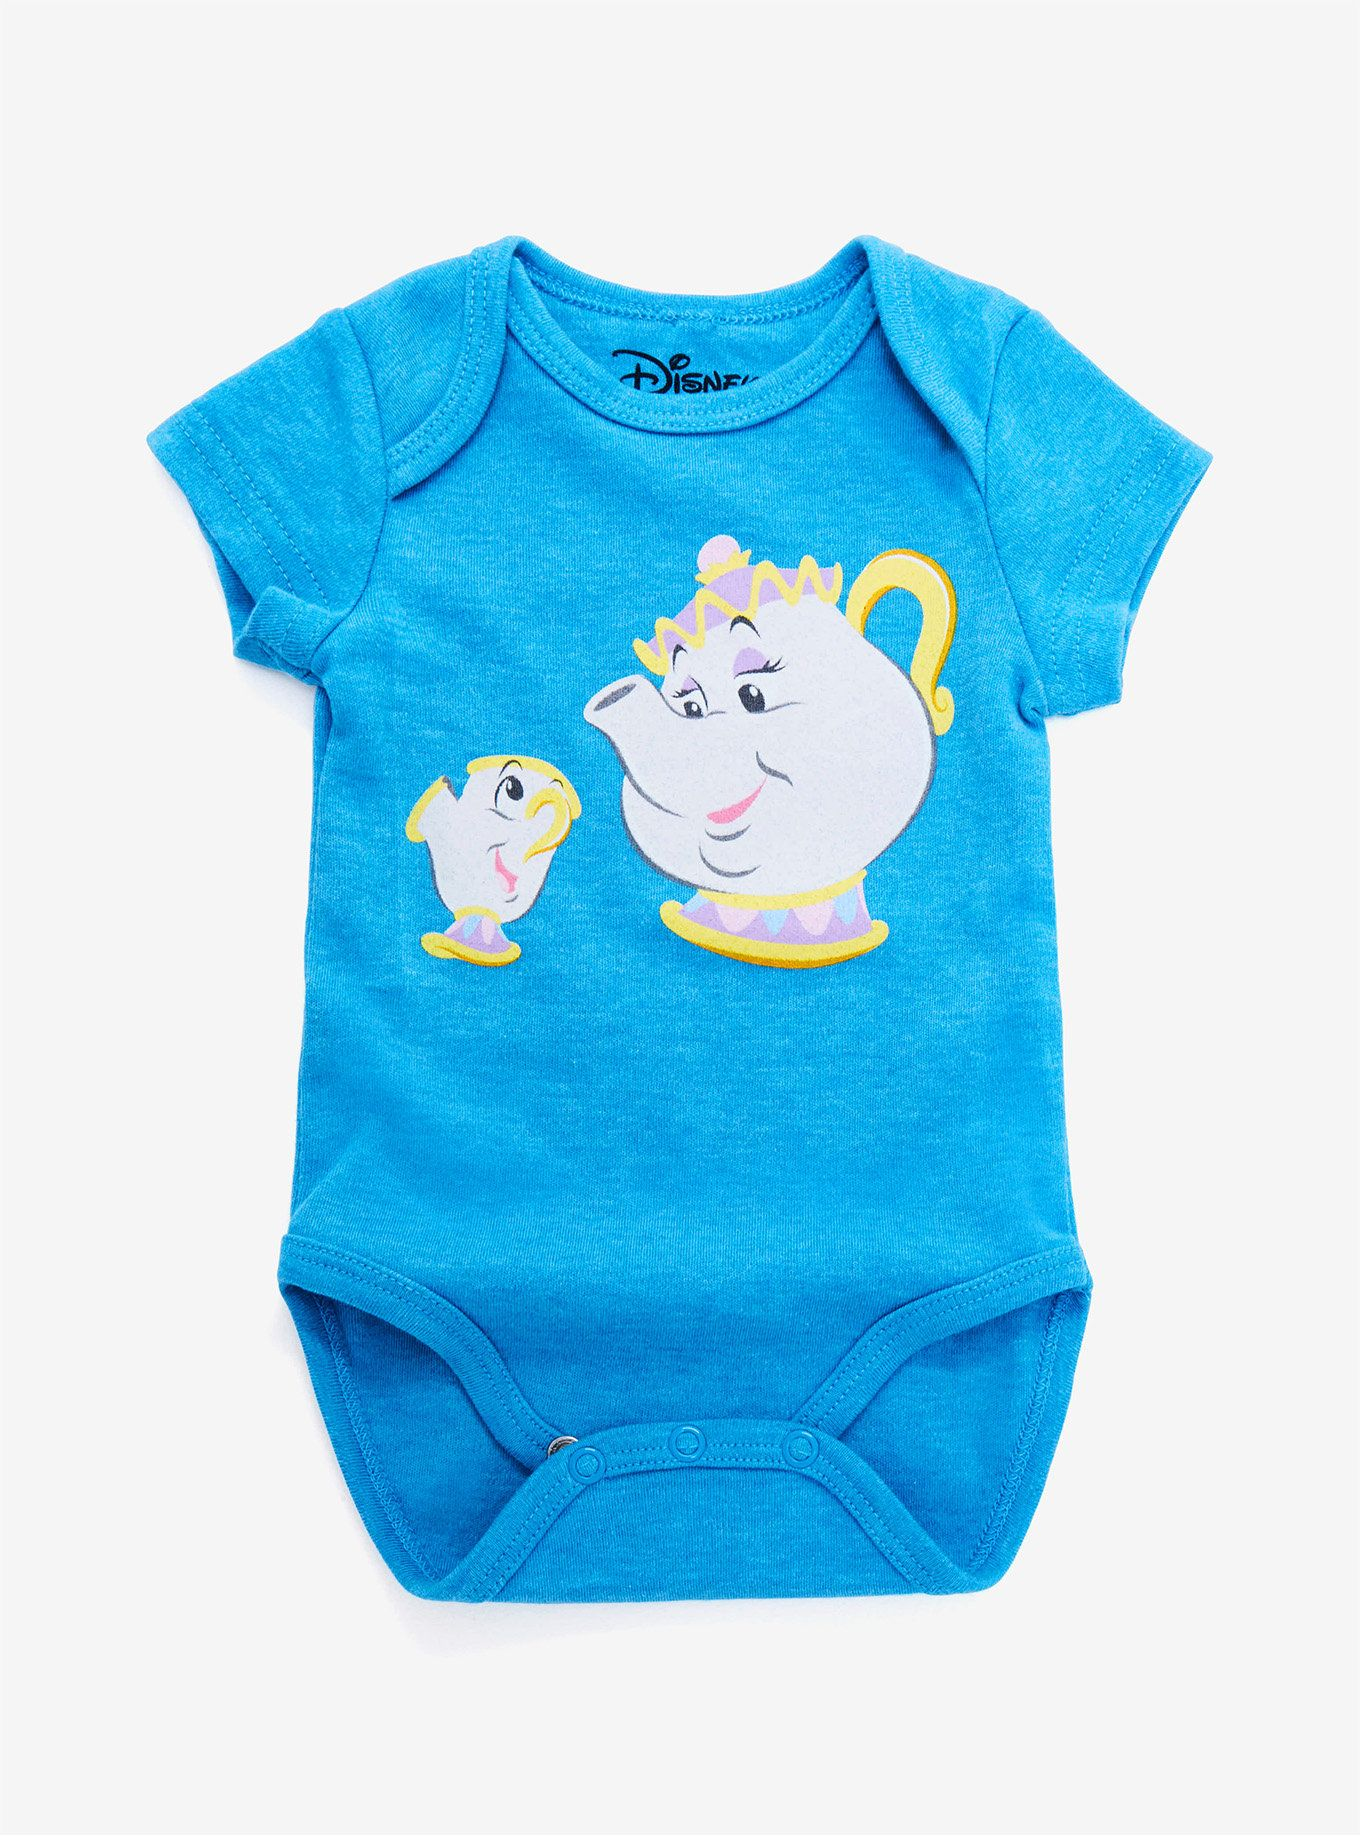 Disney Beauty And The Beast Mrs Potts And Chip Baby Bodysuit